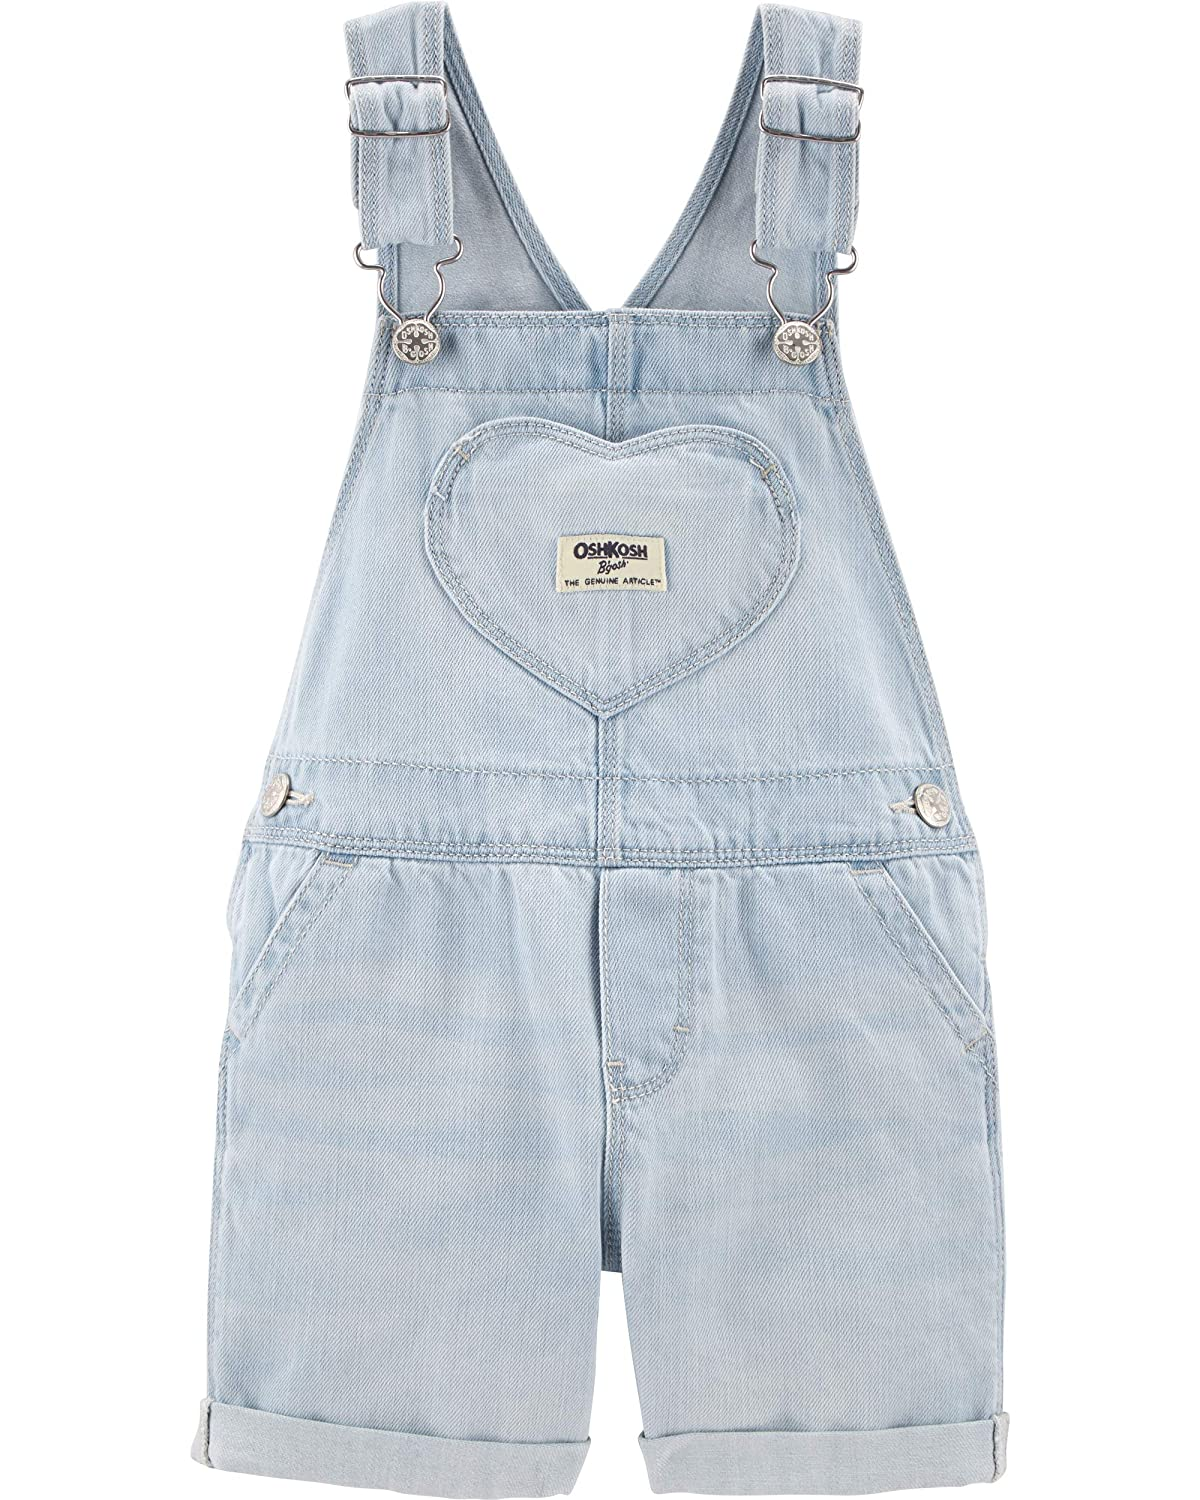 OshKosh ガールズ B'Gosh PANTS ベビー ガールズ Shortall|9 B07H5YR59X Denim Heart Shortall ベビー ガールズ ベビー ガールズ |Denim Heart Shortall|9 Months, Dream Link:eda71193 --- mail.tastykhabar.com